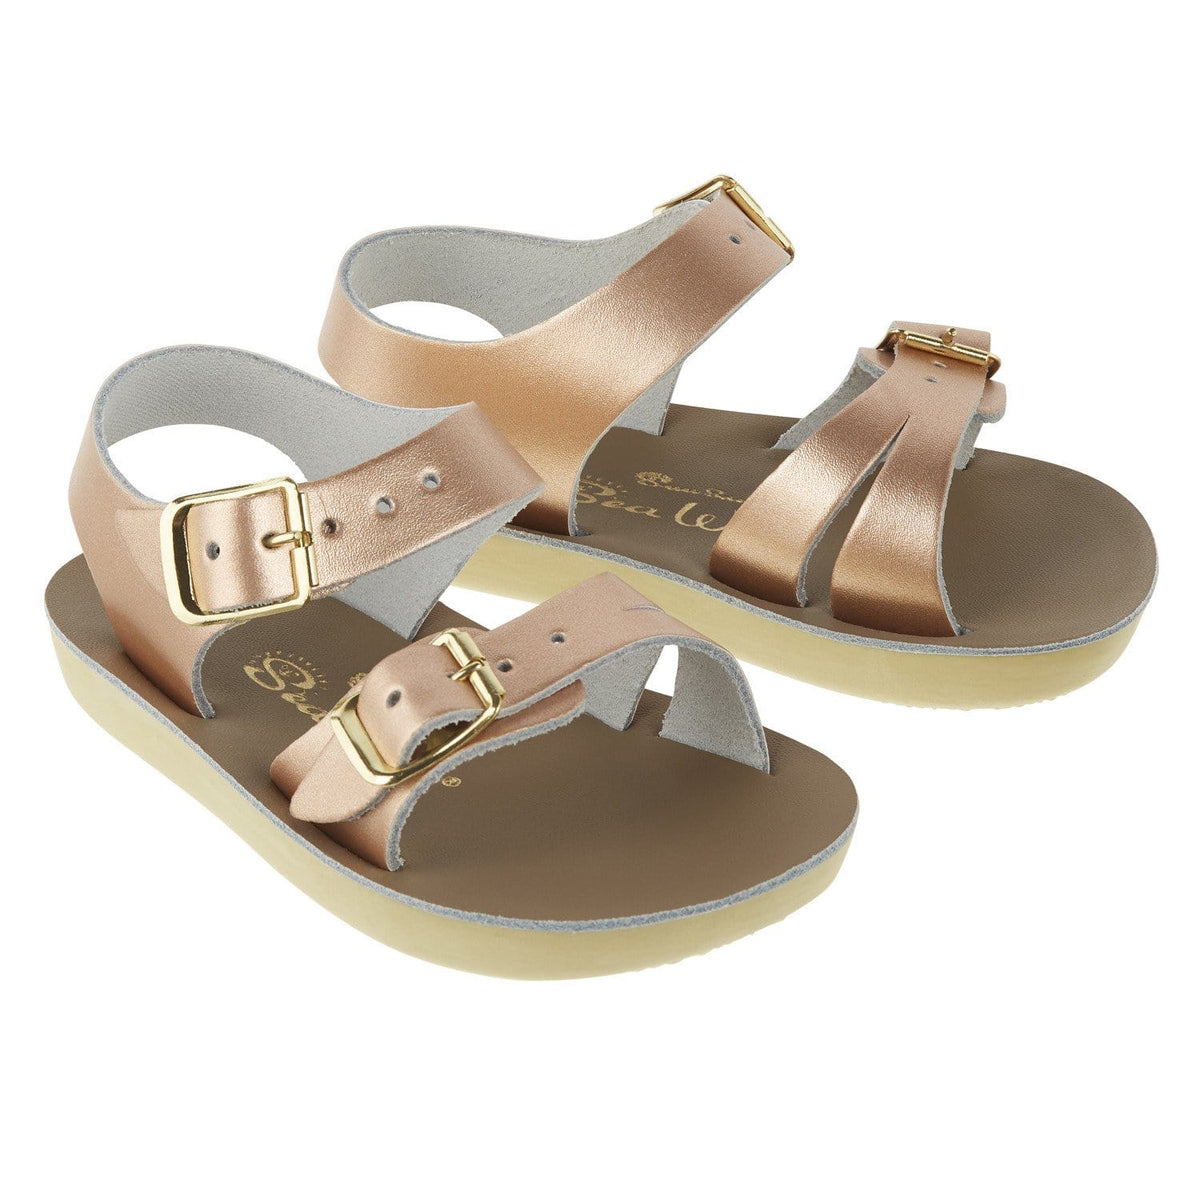 Seewee Salt-Water Sandals Rose Gold